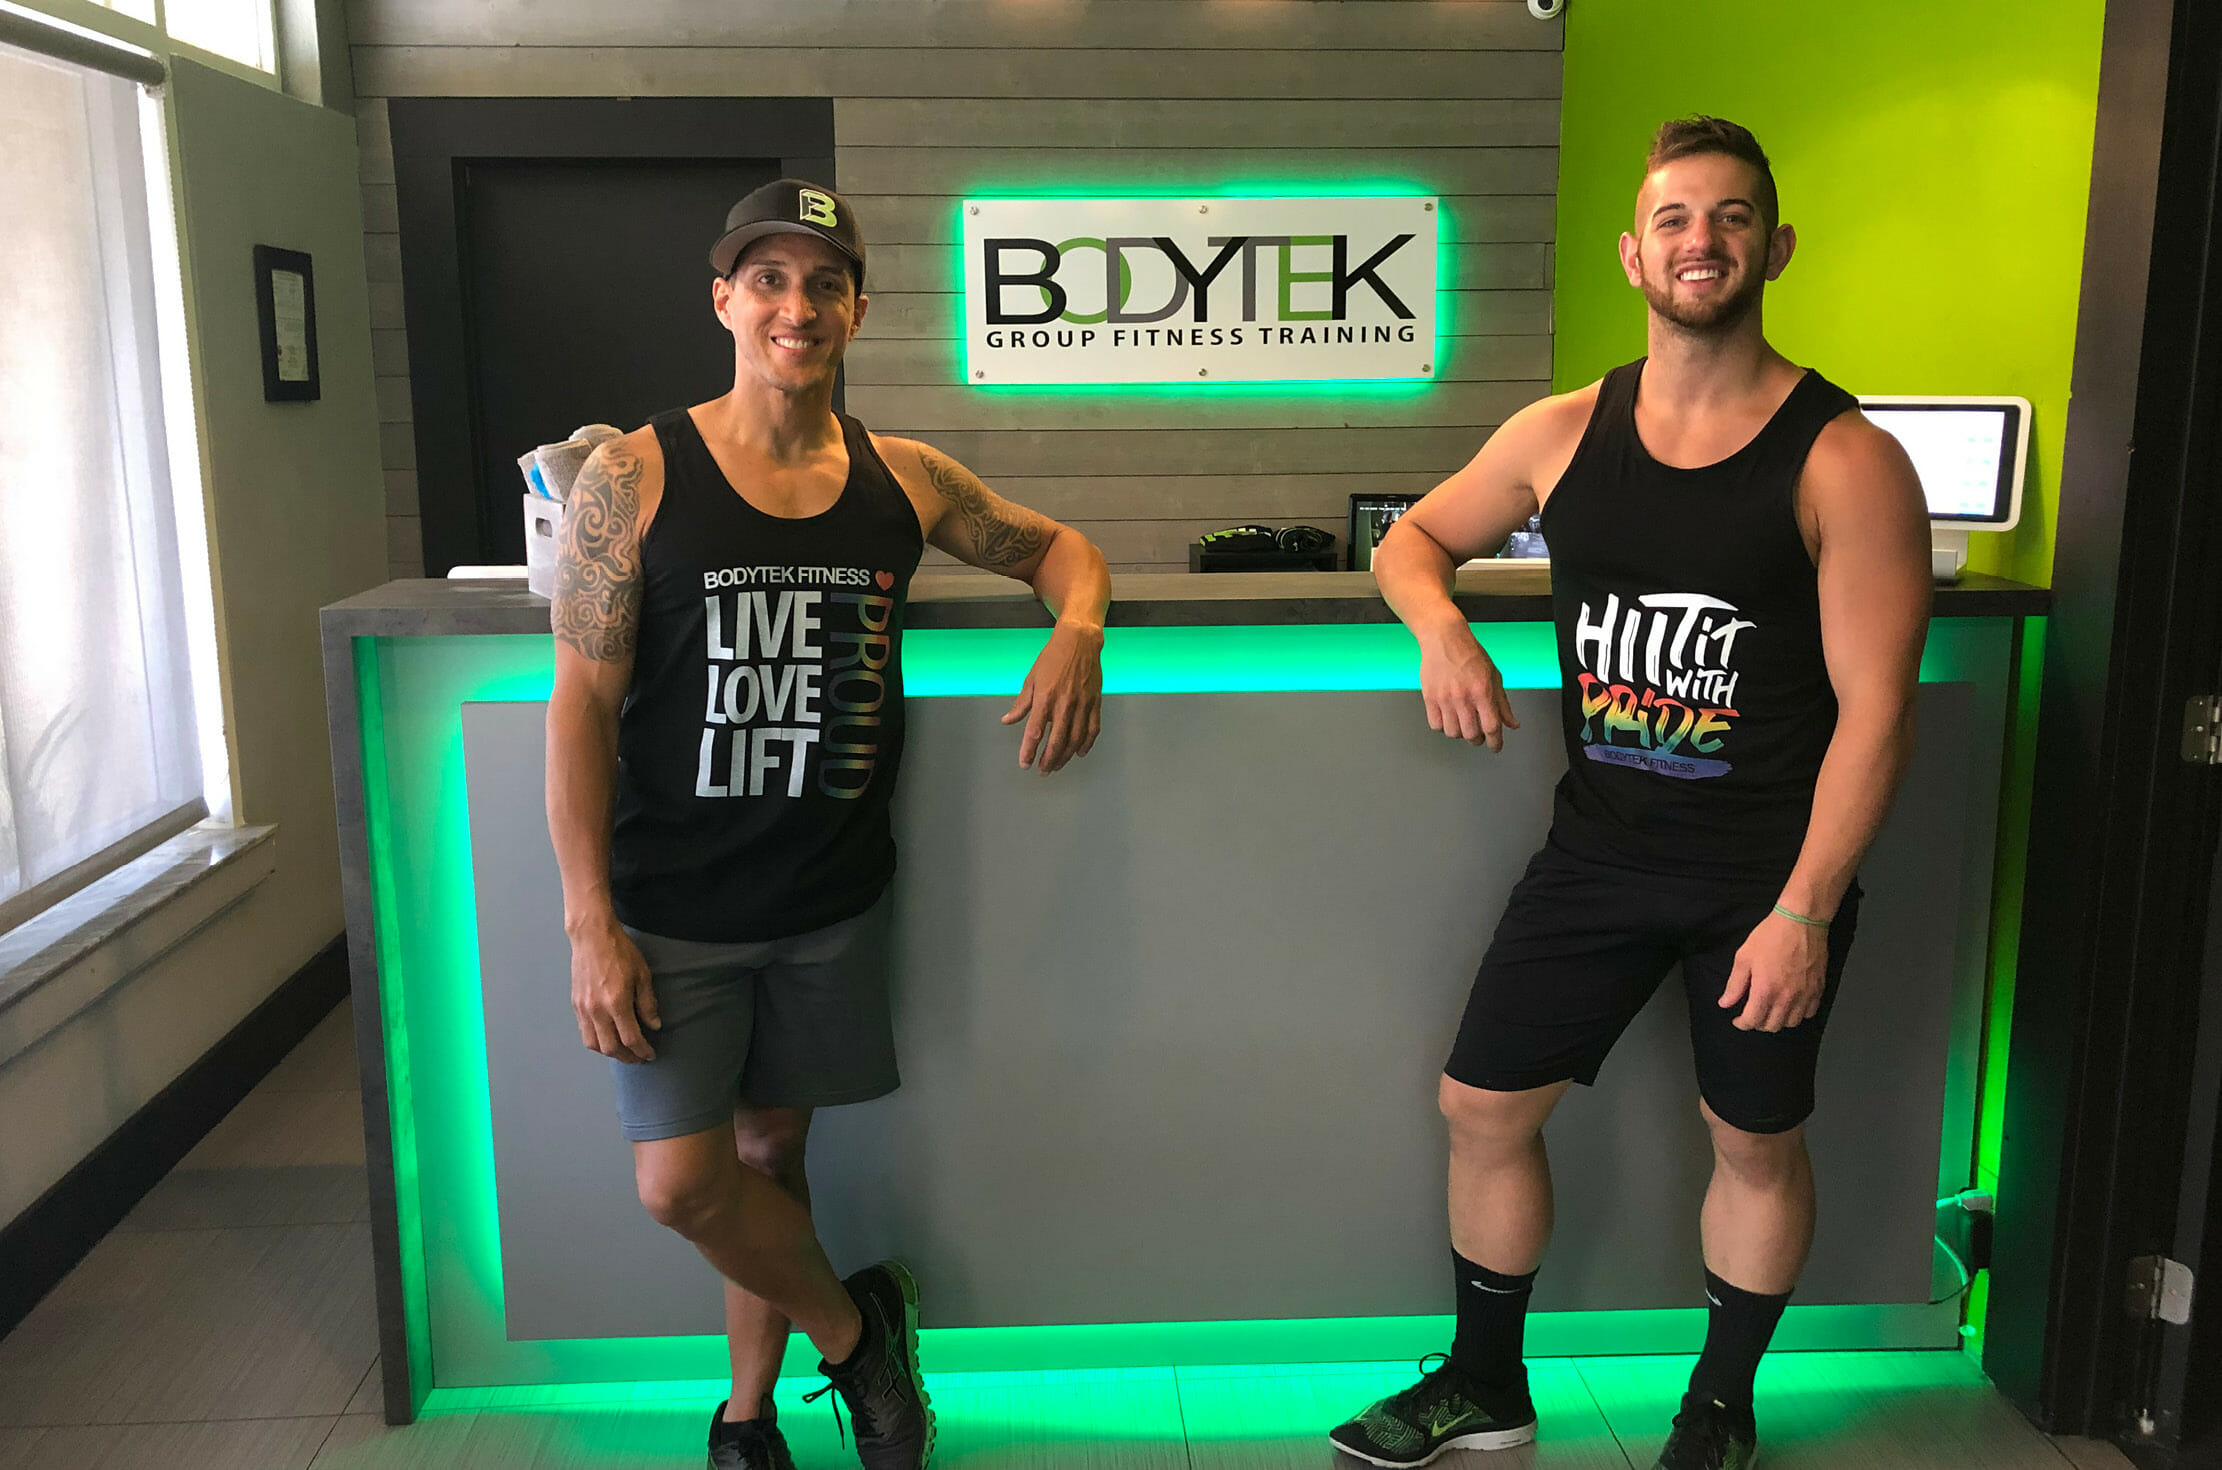 Health, Fitness, and a Model for a Successful Small Business